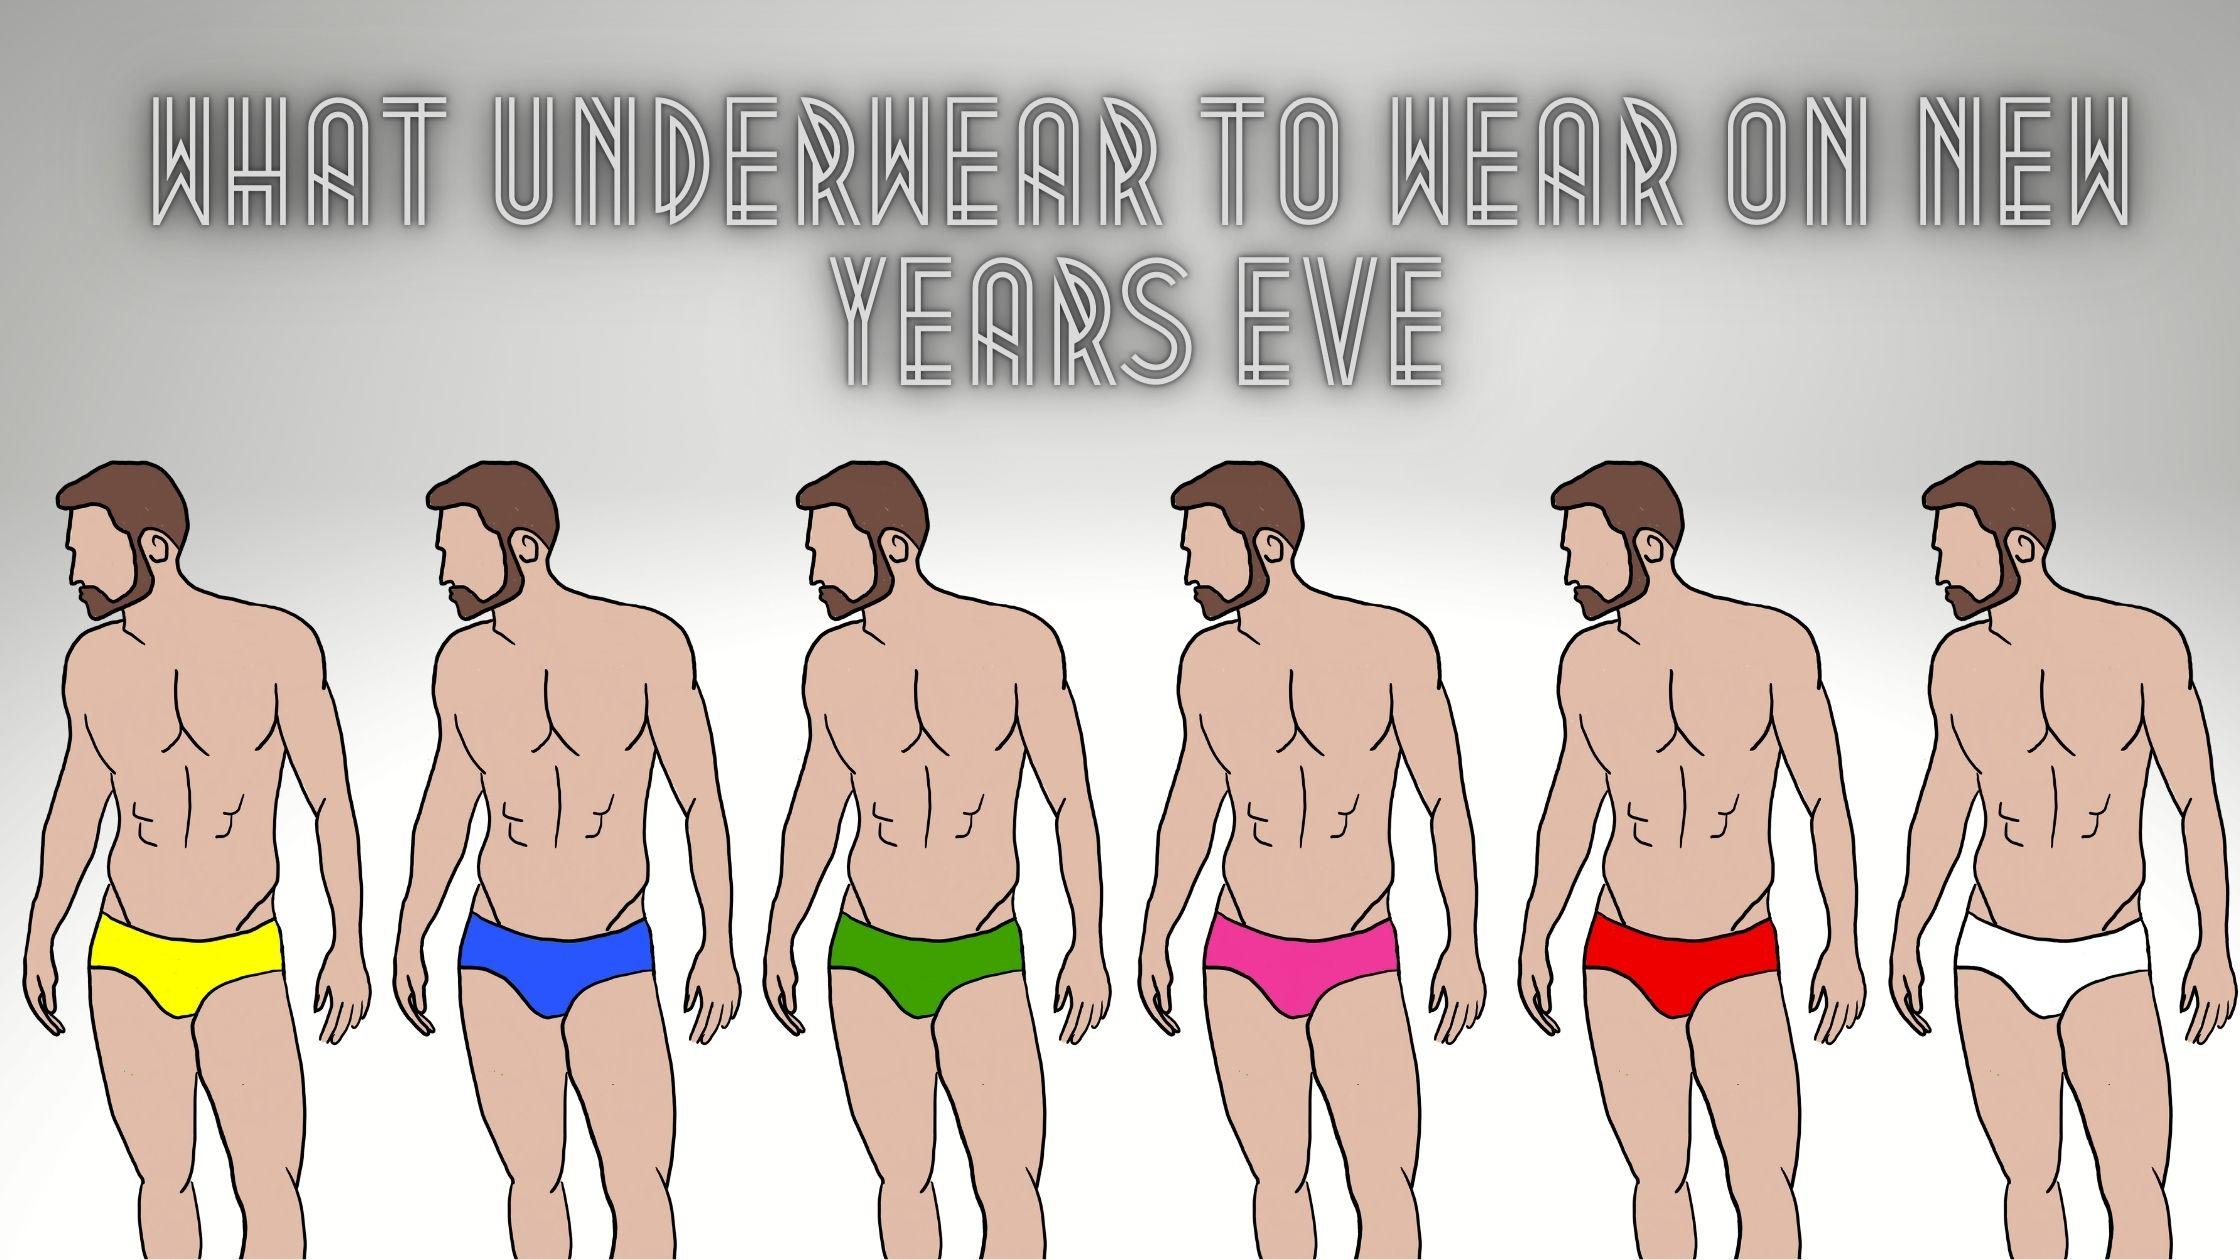 What color underwear should you wear on New Years Eve?